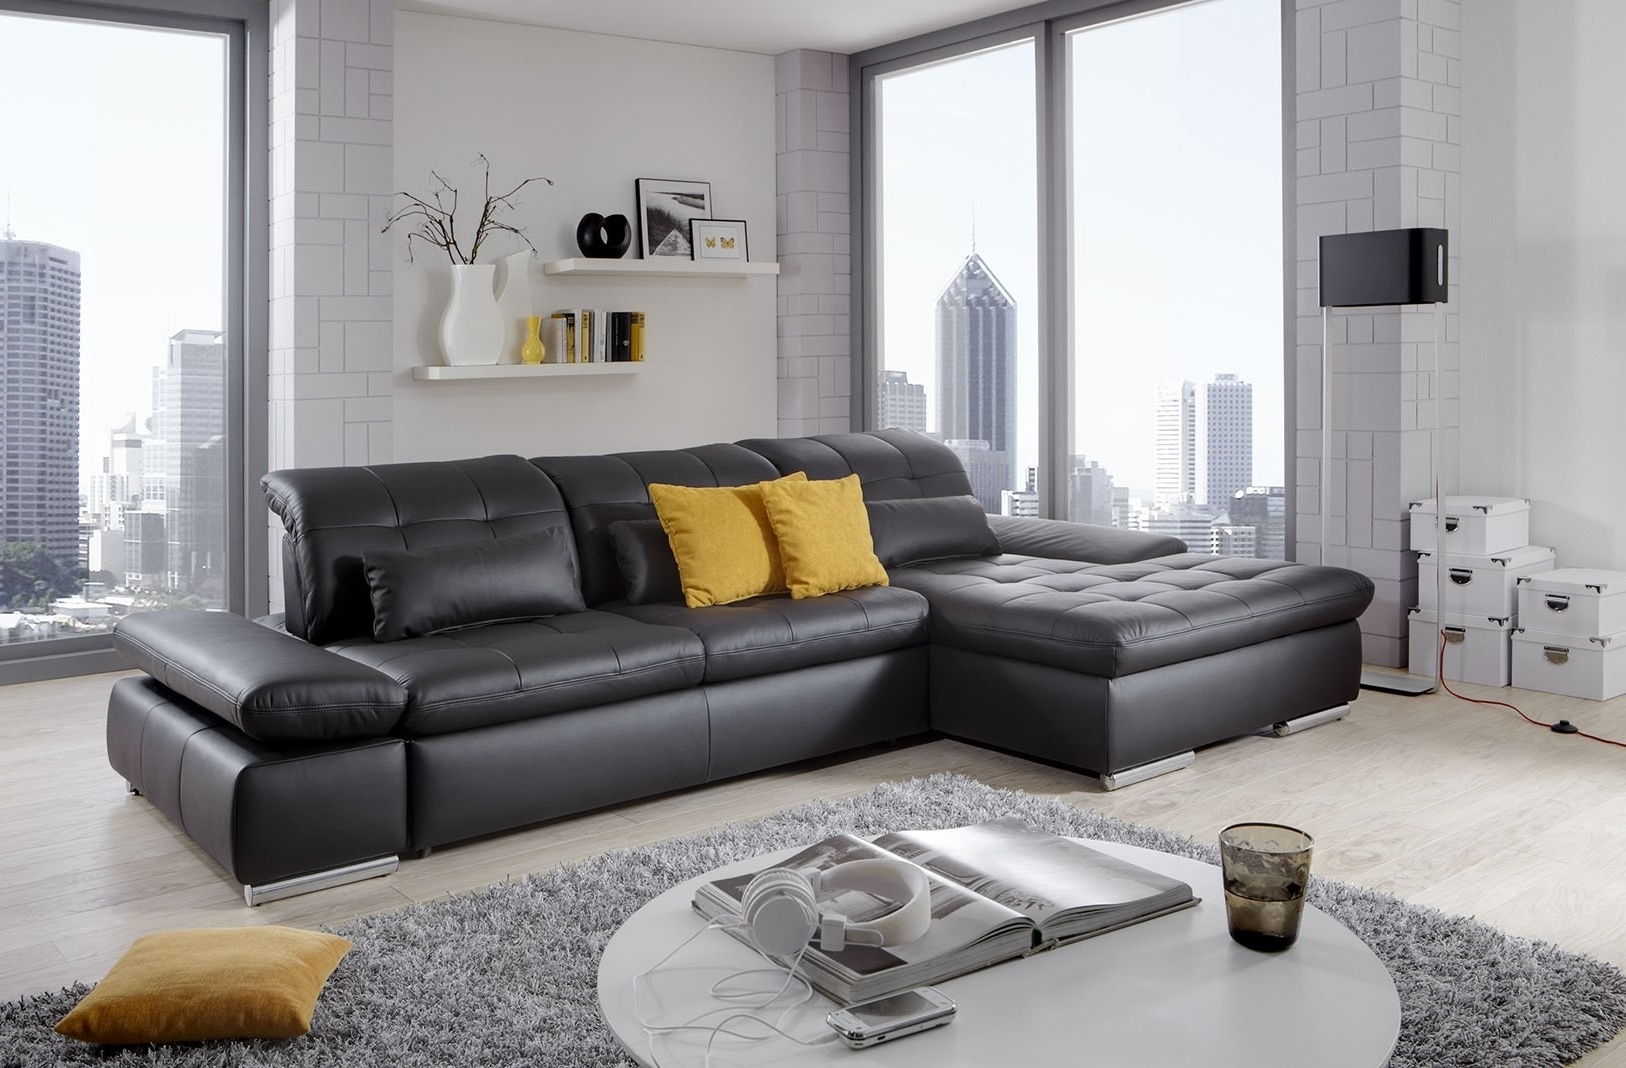 Well Known Alpine Sectional Sofa In Black Leather Left Chaise Inside Trinidad And Tobago Sectional Sofas (View 12 of 15)